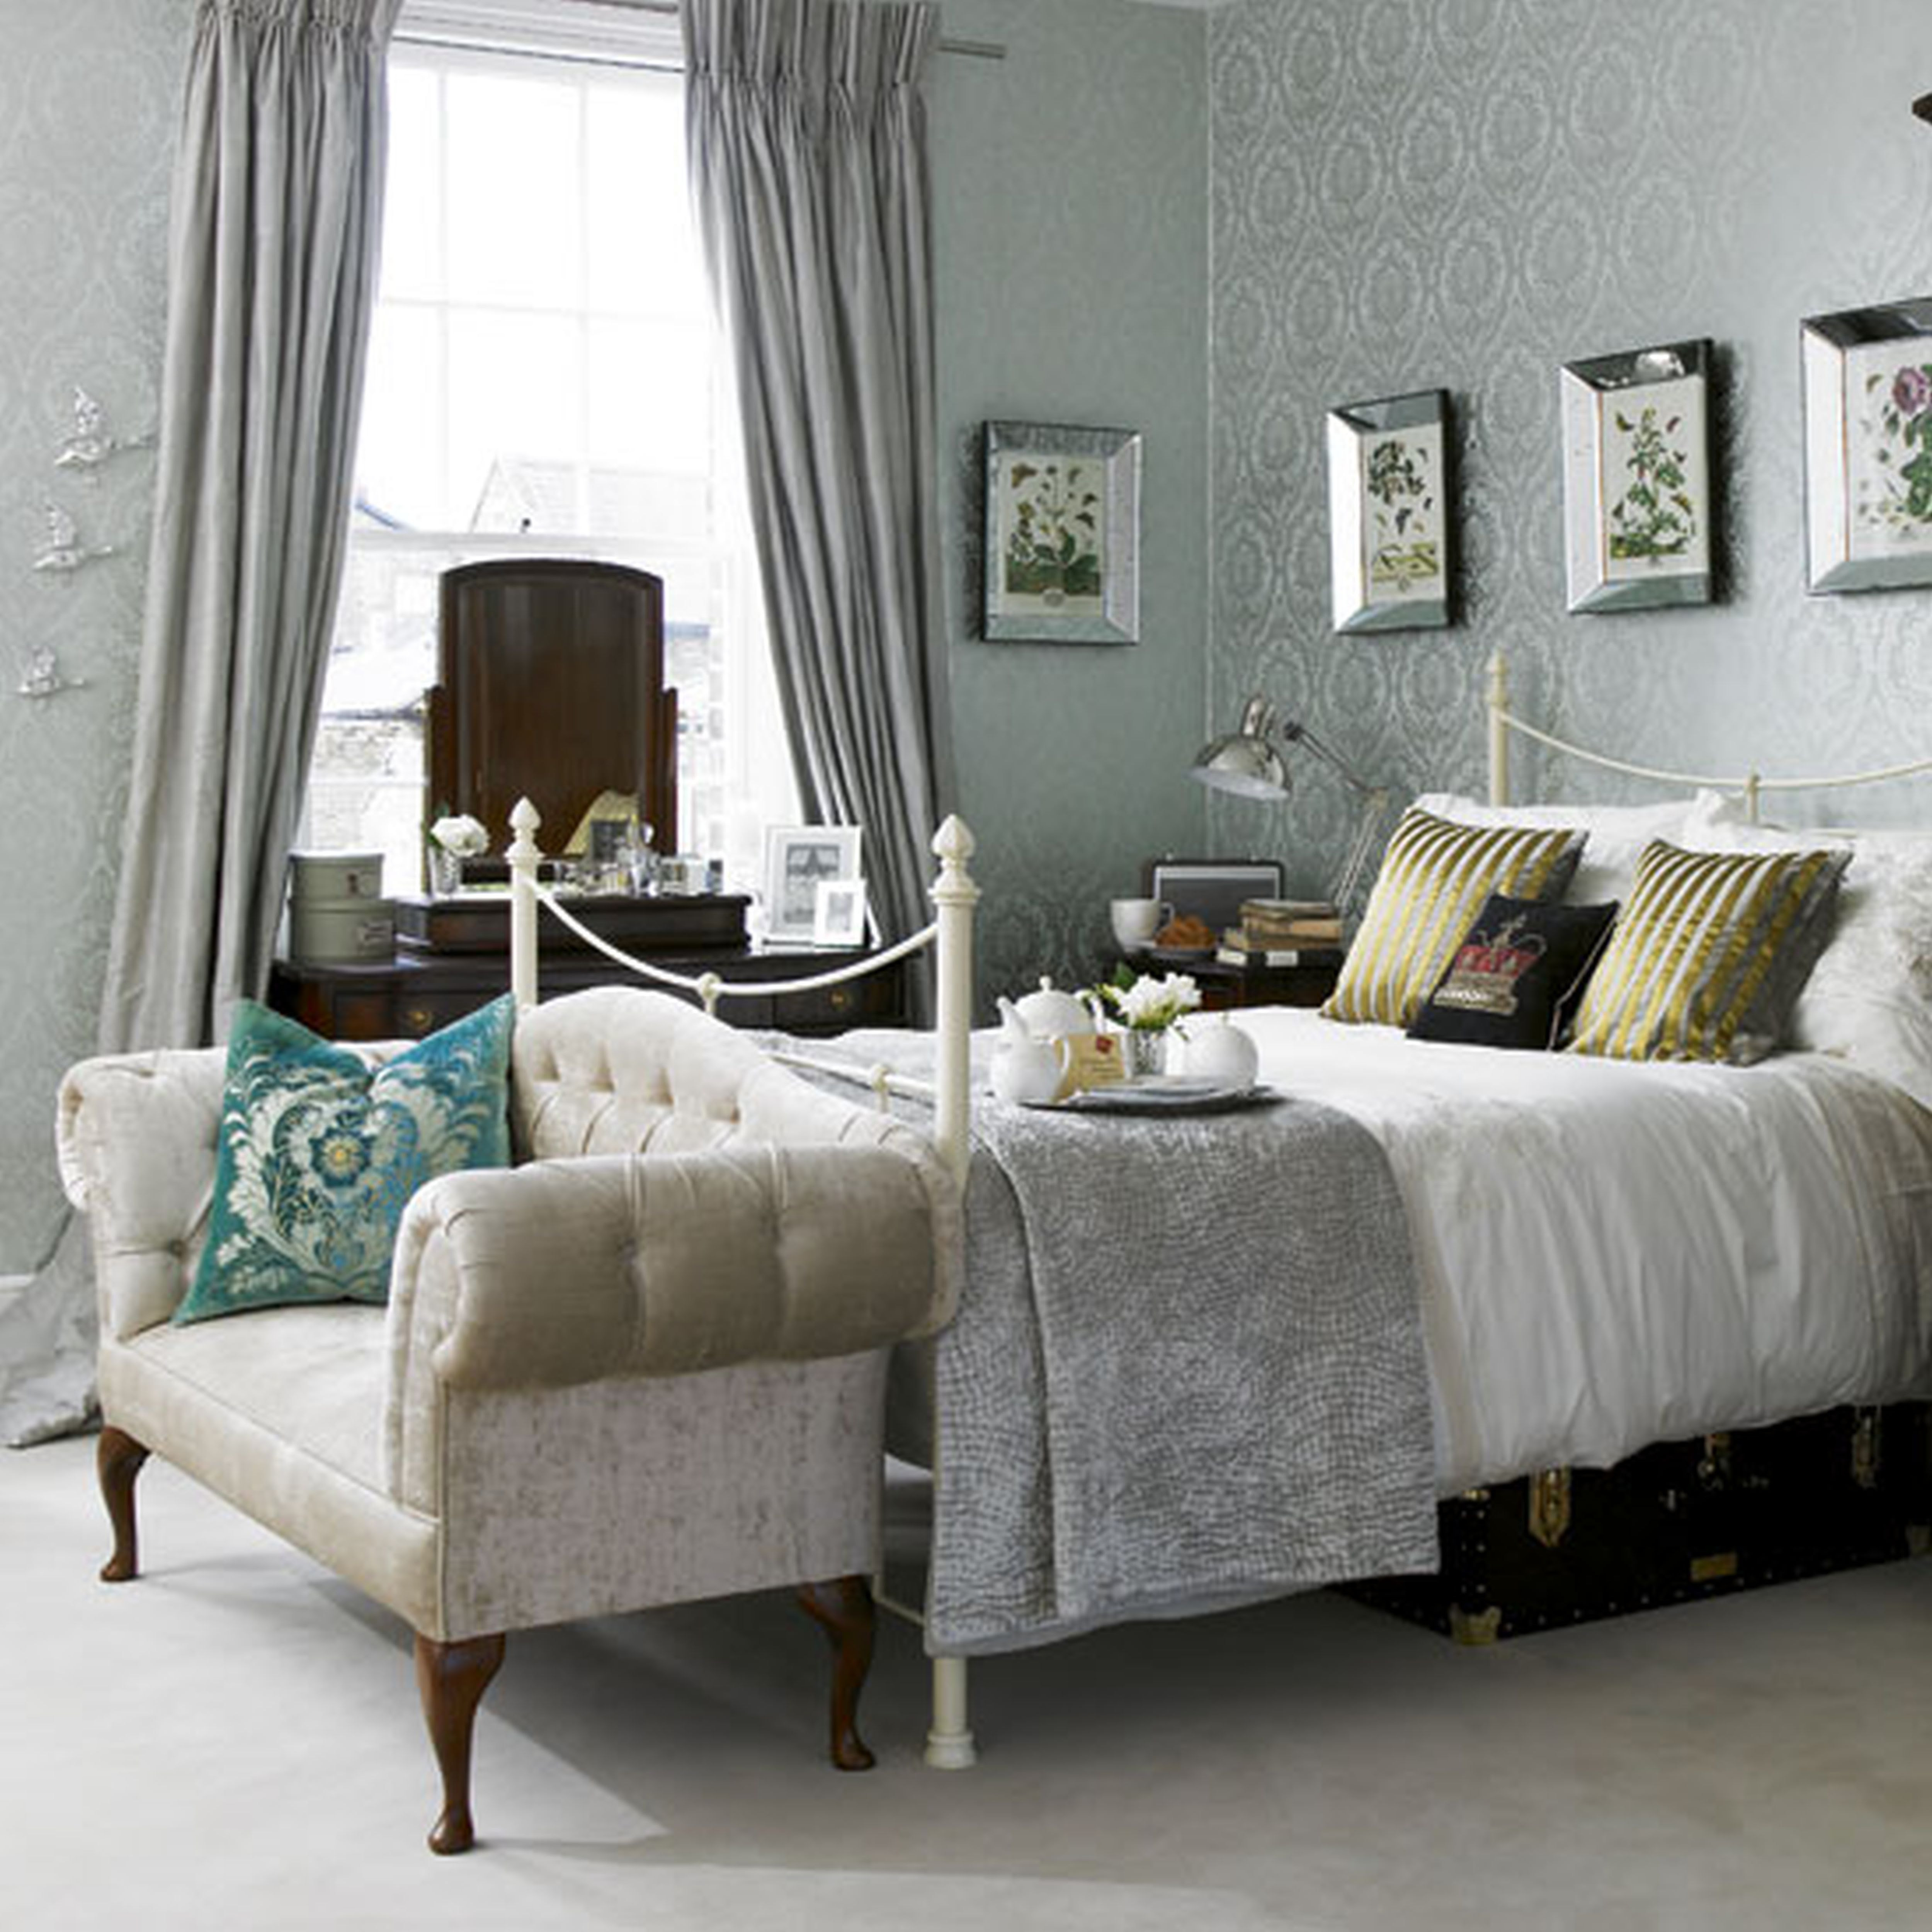 Decorating Ideas For Small Bedrooms With Queen Bed Beds Bedroom